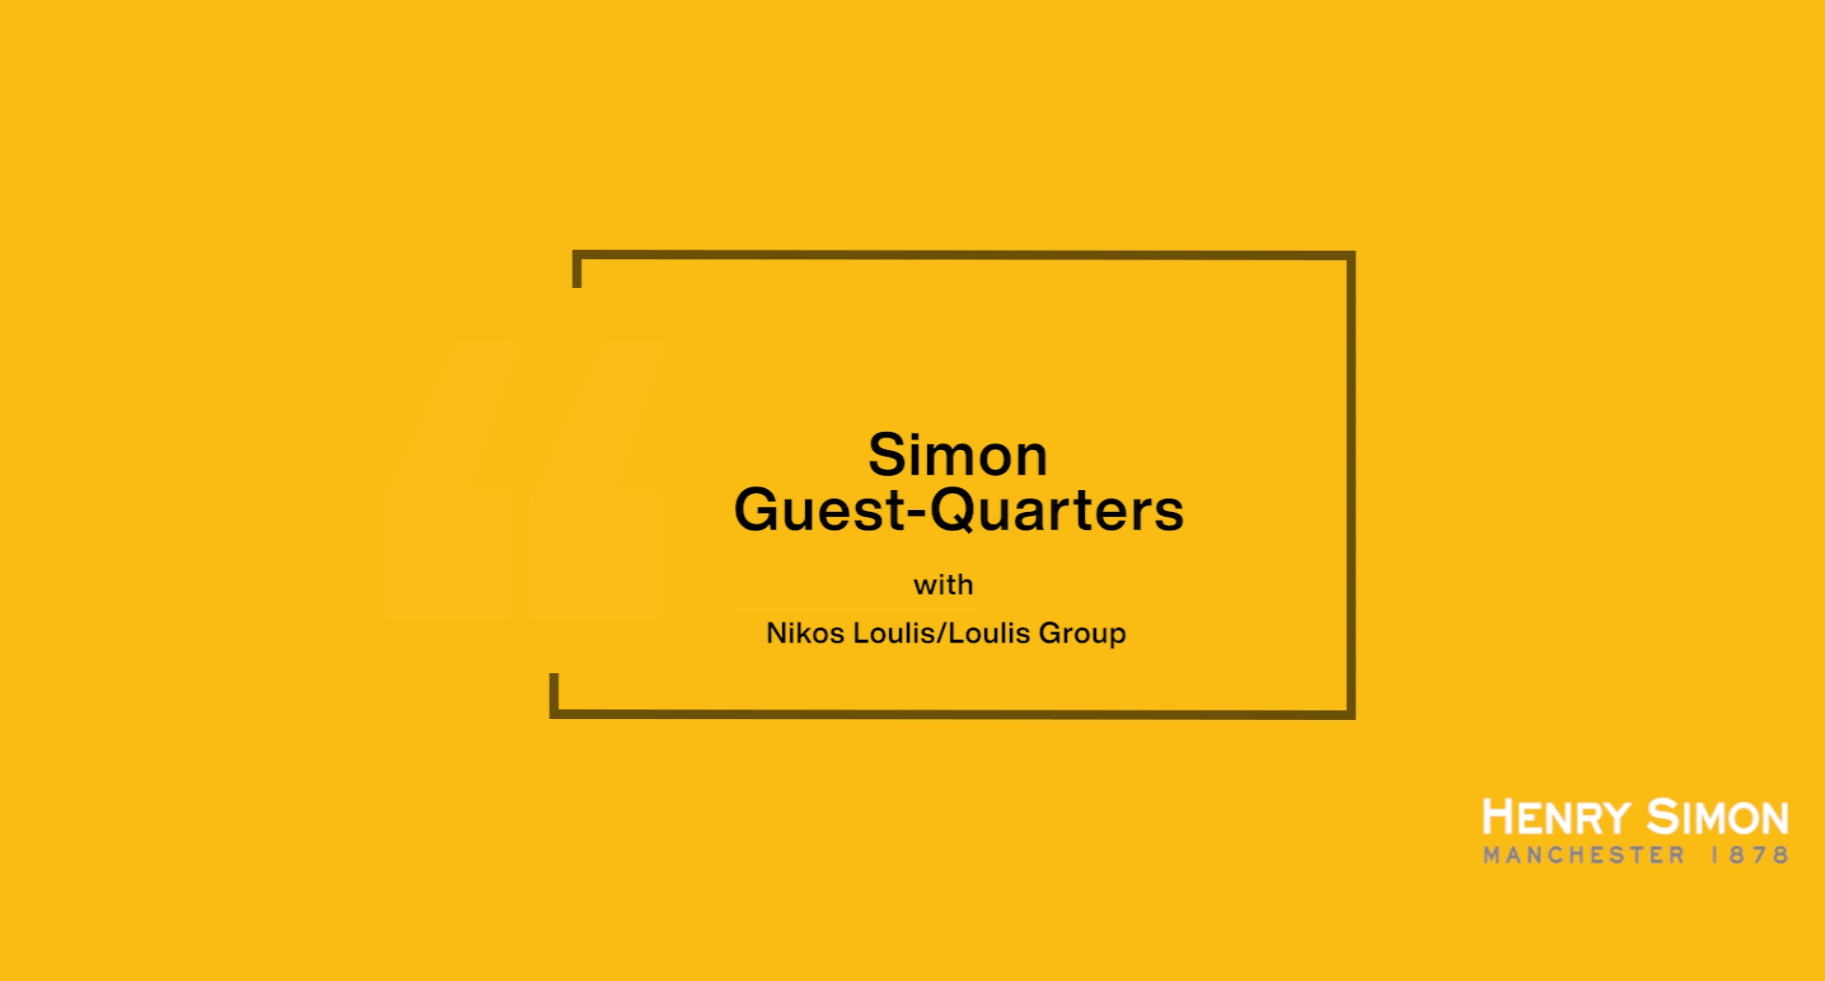 Simon Guest-Quarters with Nikos Loulis/Loulis Group